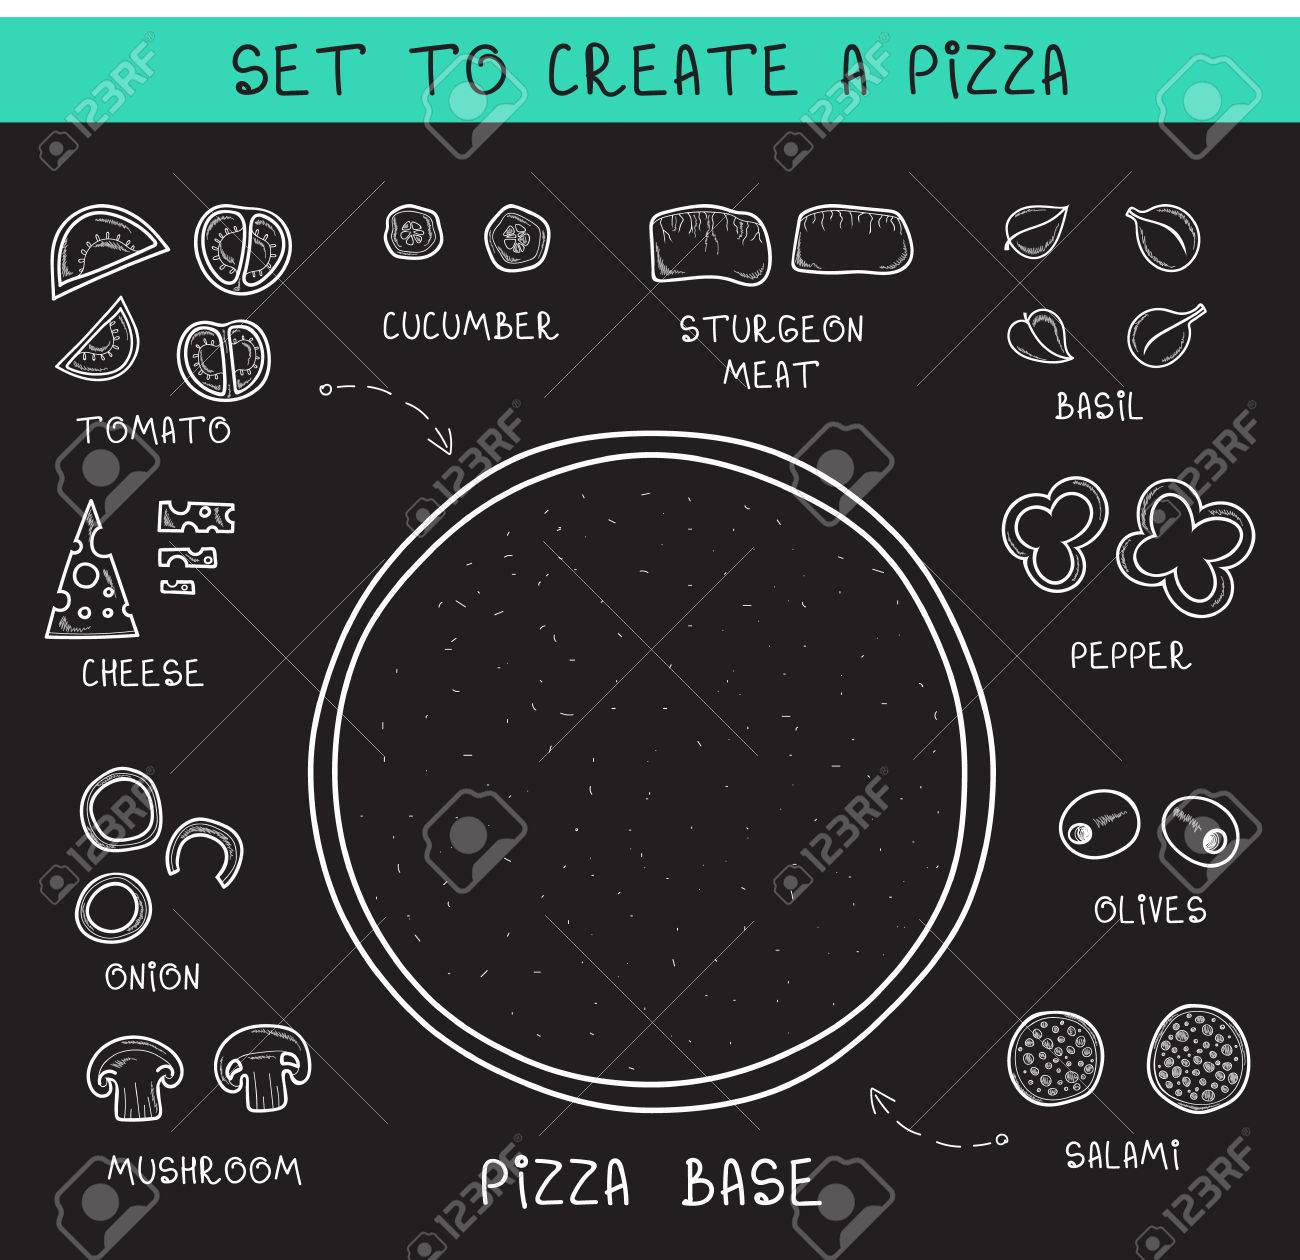 doodle set ingredients of chalk to create pizza template pizza